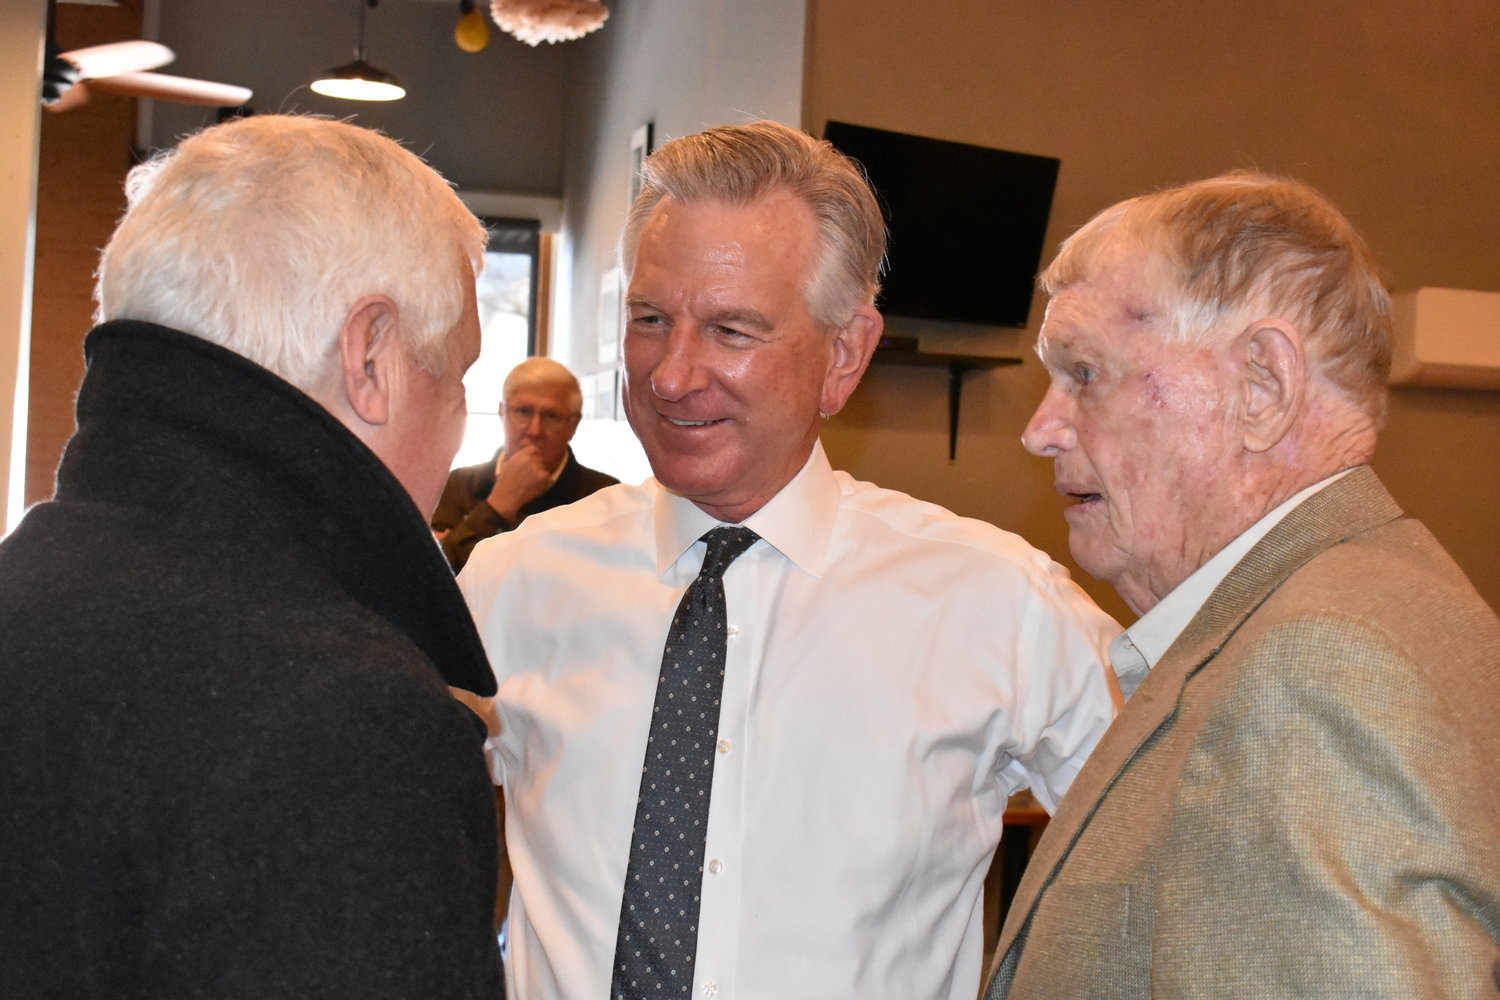 Republican Senate candidate Tommy Tuberville, center, talks with Jasper Mayor David O'Mary, left, and retired Jasper dentist Buddy Thorne Friday. Tuberville was in Jasper to speak at a campaign luncheon.